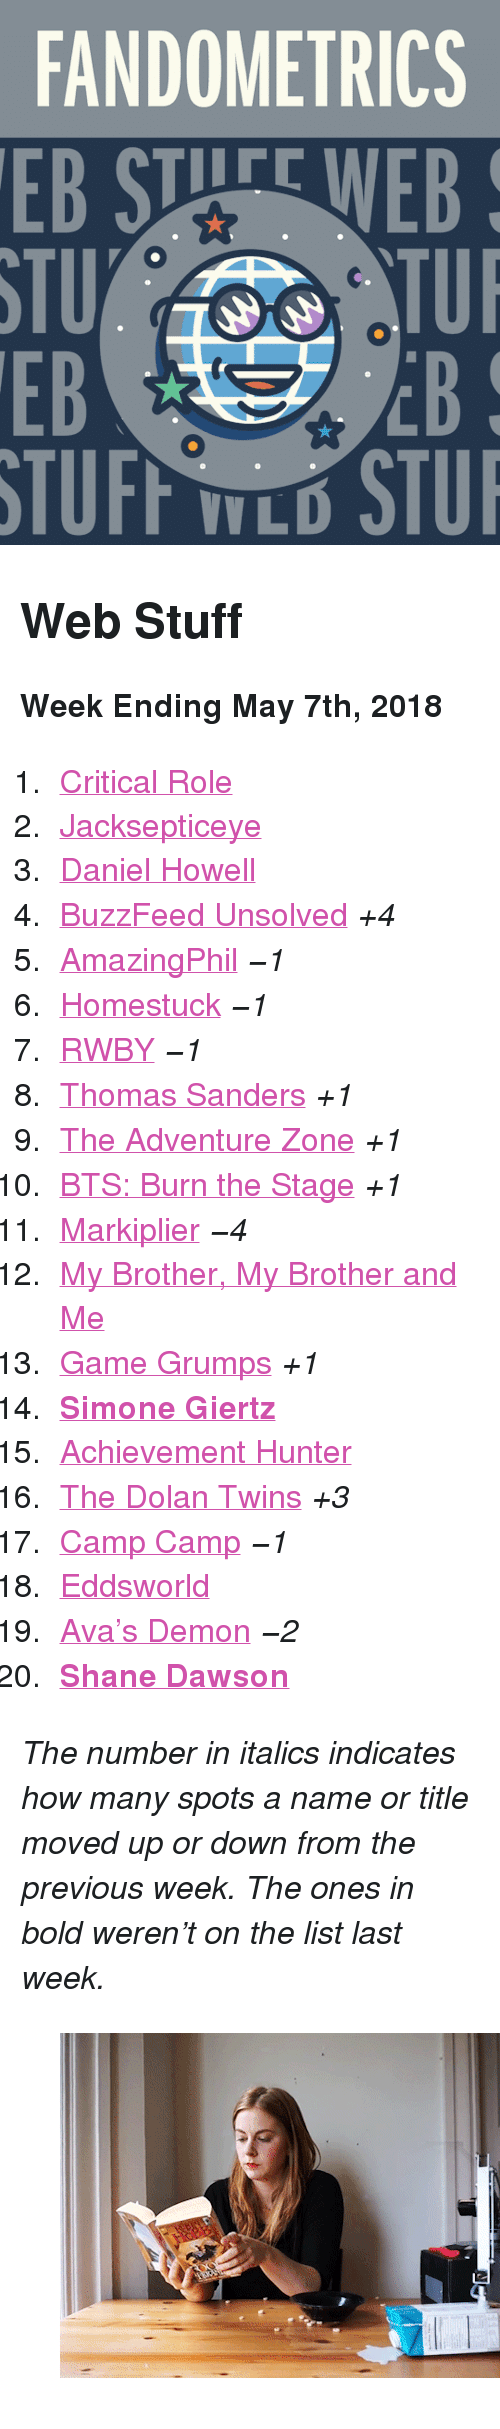 """markiplier: FANDOMETRICS  STU  EB  TUFF TLO STU <h2>Web Stuff</h2><p><b>Week Ending May 7th, 2018</b></p><ol><li><a href=""""http://www.tumblr.com/search/critical%20role"""">Critical Role</a></li>  <li><a href=""""http://www.tumblr.com/search/jacksepticeye"""">Jacksepticeye</a></li>  <li><a href=""""http://www.tumblr.com/search/daniel%20howell"""">Daniel Howell</a></li>  <li><a href=""""http://www.tumblr.com/search/buzzfeed%20unsolved"""">BuzzFeed Unsolved</a><i>+4</i></li>  <li><a href=""""http://www.tumblr.com/search/amazingphil"""">AmazingPhil</a><i><i>−1</i></i></li>  <li><a href=""""http://www.tumblr.com/search/homestuck"""">Homestuck</a><i><i>−1</i></i></li>  <li><a href=""""http://www.tumblr.com/search/rwby"""">RWBY</a><i><i>−1</i></i></li>  <li><a href=""""http://www.tumblr.com/search/thomas%20sanders"""">Thomas Sanders</a><i>+1</i></li>  <li><a href=""""http://www.tumblr.com/search/the%20adventure%20zone"""">The Adventure Zone</a><i>+1</i></li>  <li><a href=""""http://www.tumblr.com/search/burn%20the%20stage"""">BTS: Burn the Stage</a><i>+1</i></li>  <li><a href=""""http://www.tumblr.com/search/markiplier"""">Markiplier</a><i><i>−4</i></i></li>  <li><a href=""""http://www.tumblr.com/search/mbmbam"""">My Brother, My Brother and Me</a></li>  <li><a href=""""http://www.tumblr.com/search/game%20grumps"""">Game Grumps</a><i>+1</i></li>  <li><a href=""""http://www.tumblr.com/search/simone%20giertz""""><b>Simone Giertz</b></a></li>  <li><a href=""""http://www.tumblr.com/search/achievement%20hunter"""">Achievement Hunter</a></li>  <li><a href=""""http://www.tumblr.com/search/dolan%20twins"""">The Dolan Twins</a><i>+3</i></li>  <li><a href=""""http://www.tumblr.com/search/camp%20camp"""">Camp Camp</a><i><i>−1</i></i></li>  <li><a href=""""http://www.tumblr.com/search/eddsworld"""">Eddsworld</a></li>  <li><a href=""""http://www.tumblr.com/search/avas%20demon"""">Ava&rsquo;s Demon</a><i><i>−2</i></i></li>  <li><a href=""""http://www.tumblr.com/search/shane%20dawson""""><b>Shane Dawson</b></a></li></ol><p><i>The number in italics indicates how many spots a name or title moved up or down"""